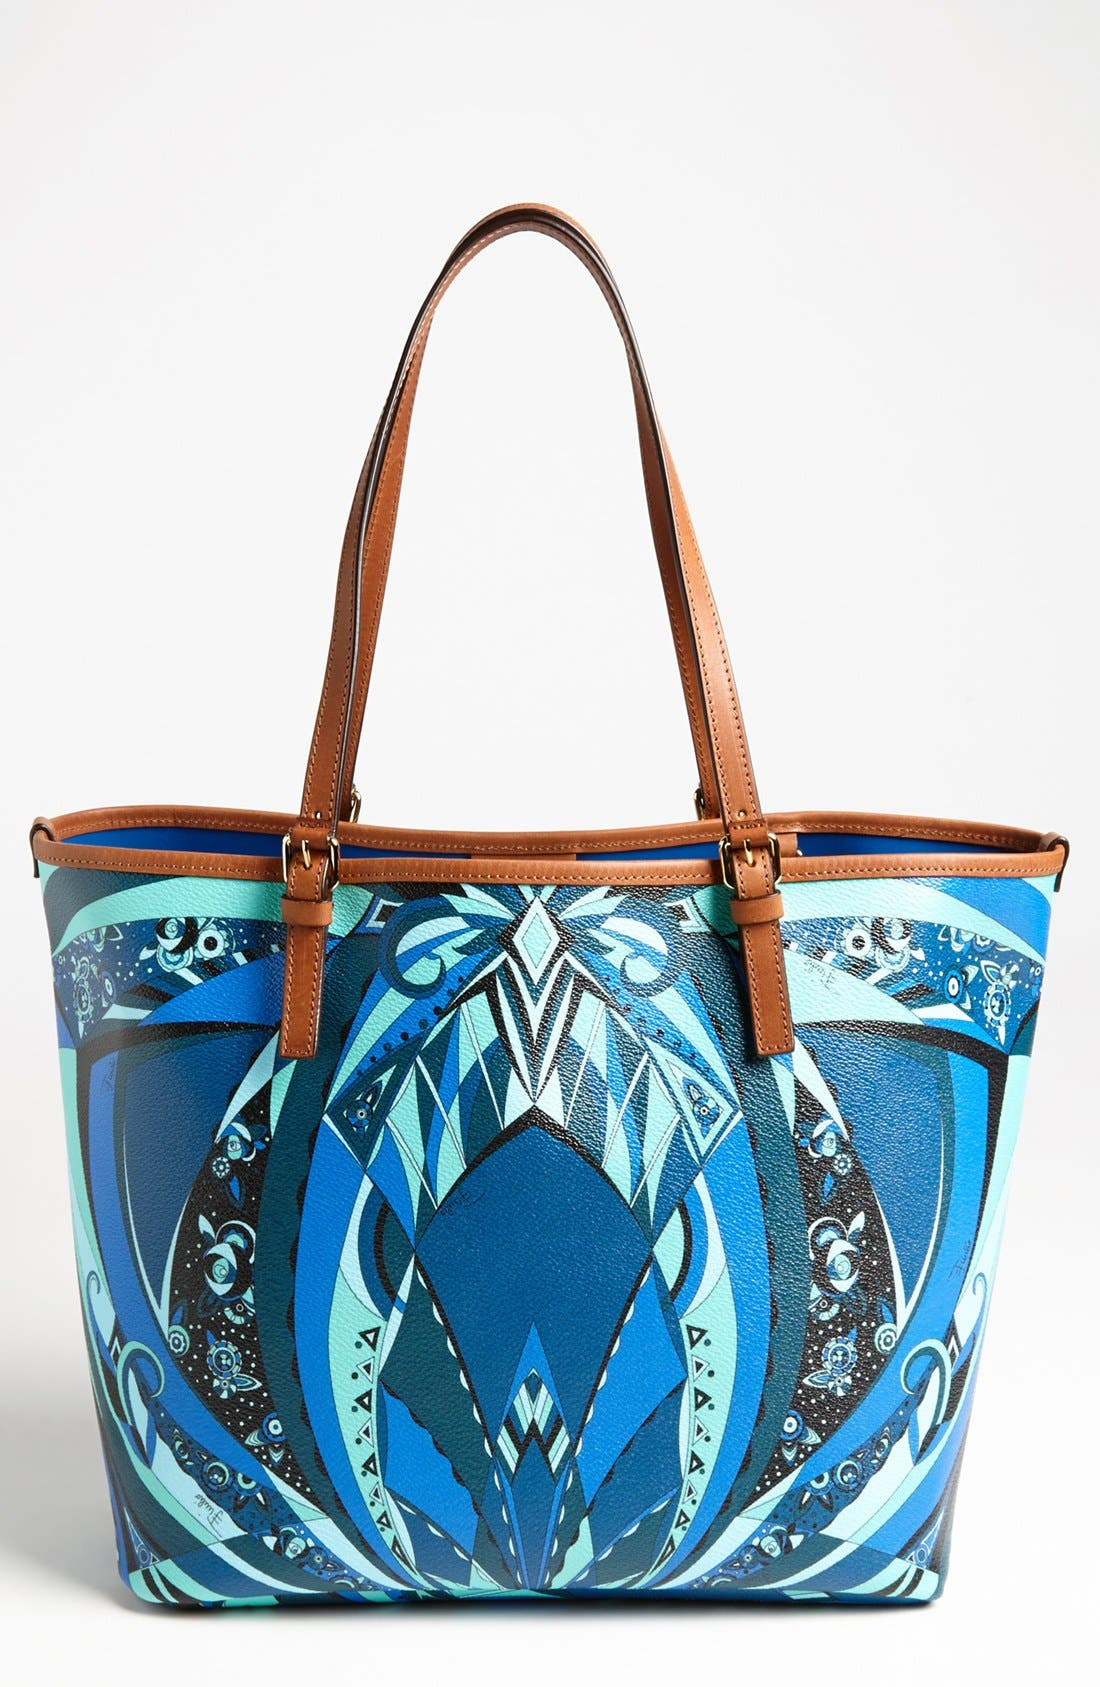 Main Image - Emilio Pucci 'Chicago Piazzato - Medium' Tote